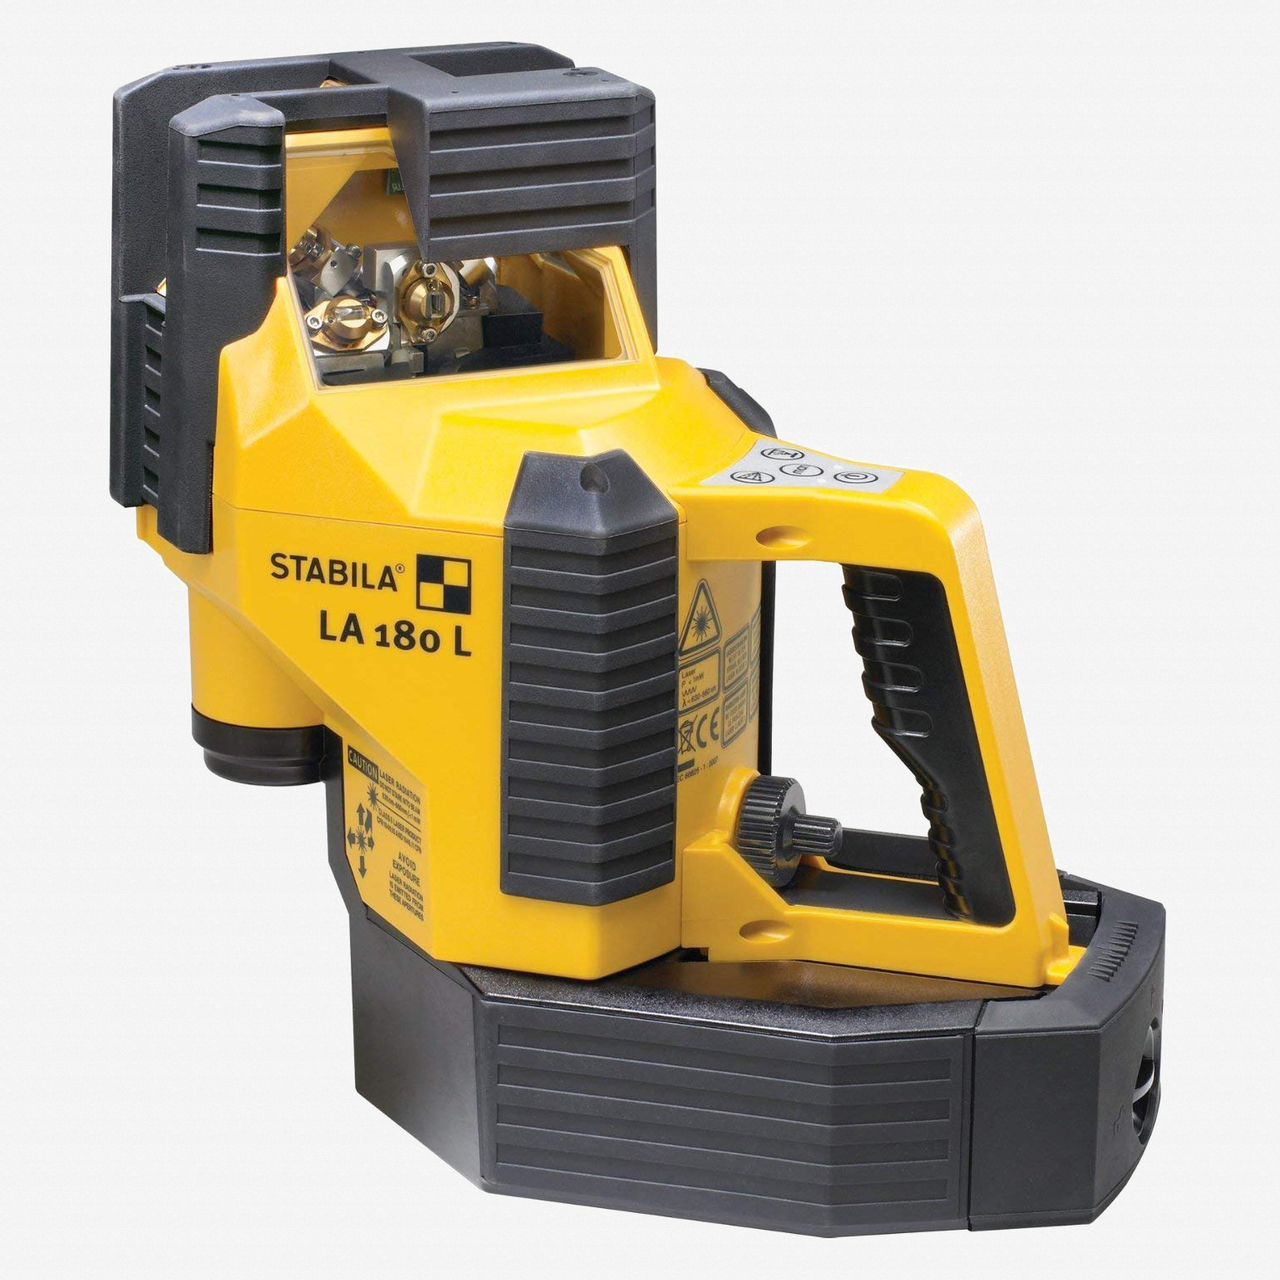 Stabila 02180 LA 180L Layout Station with Auto Alignment - KC Tool